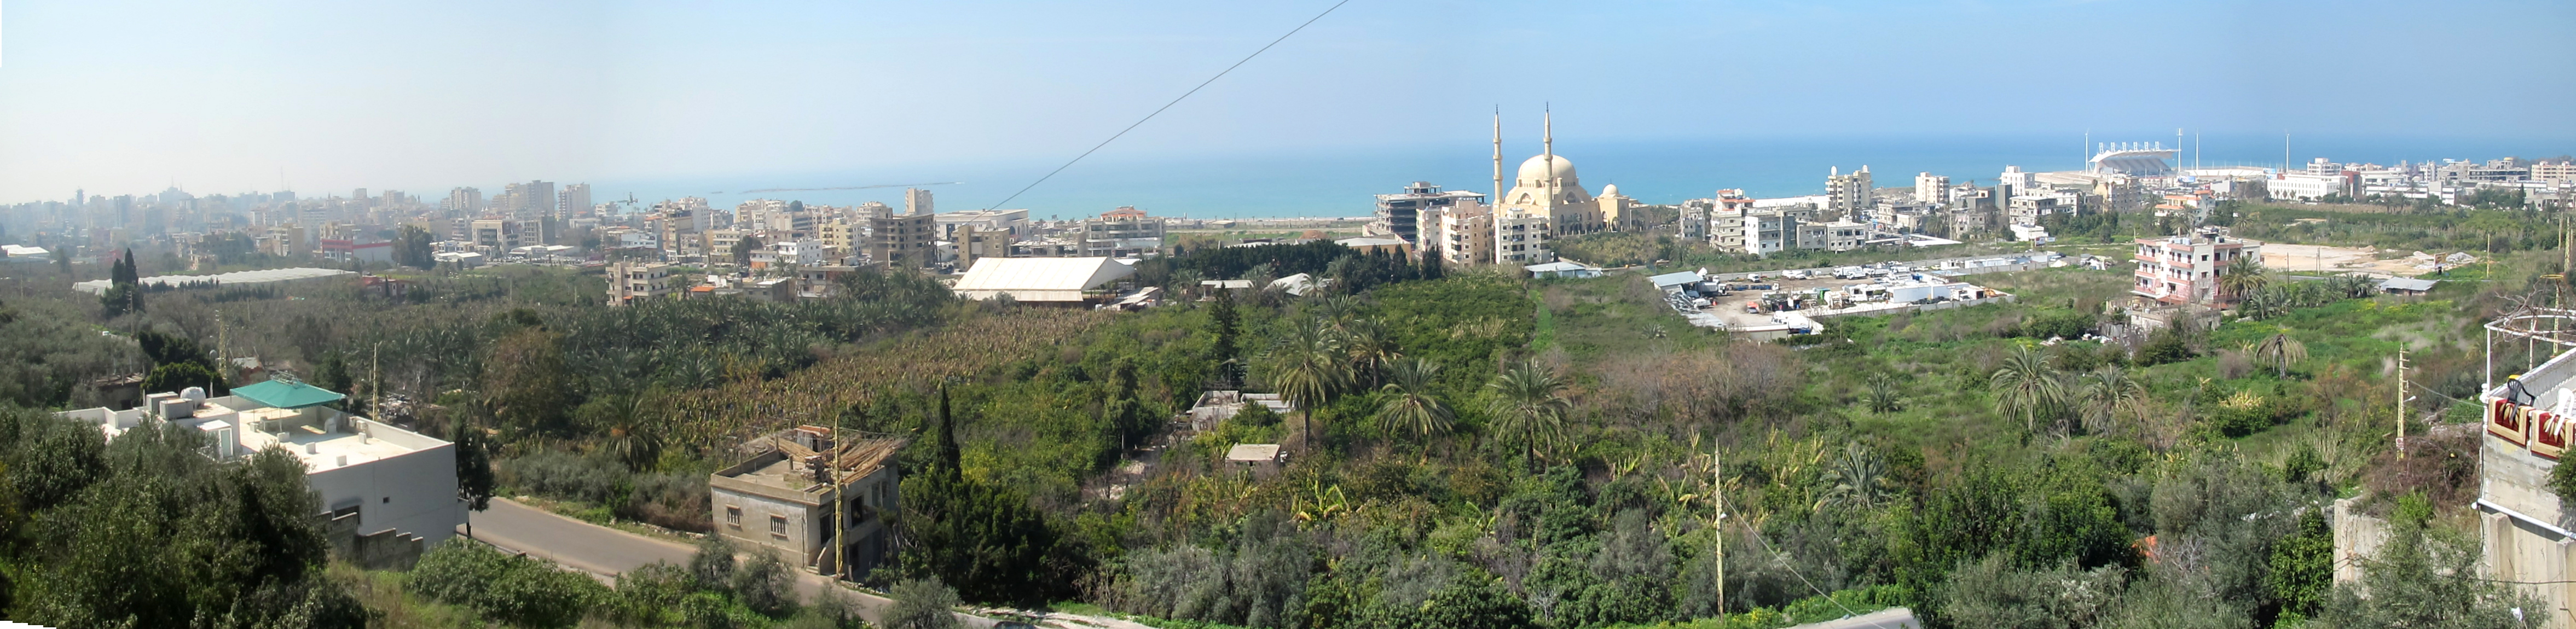 Electricite Du Liban Telephone jadaliyya - clientelism and the destruction of ancient water